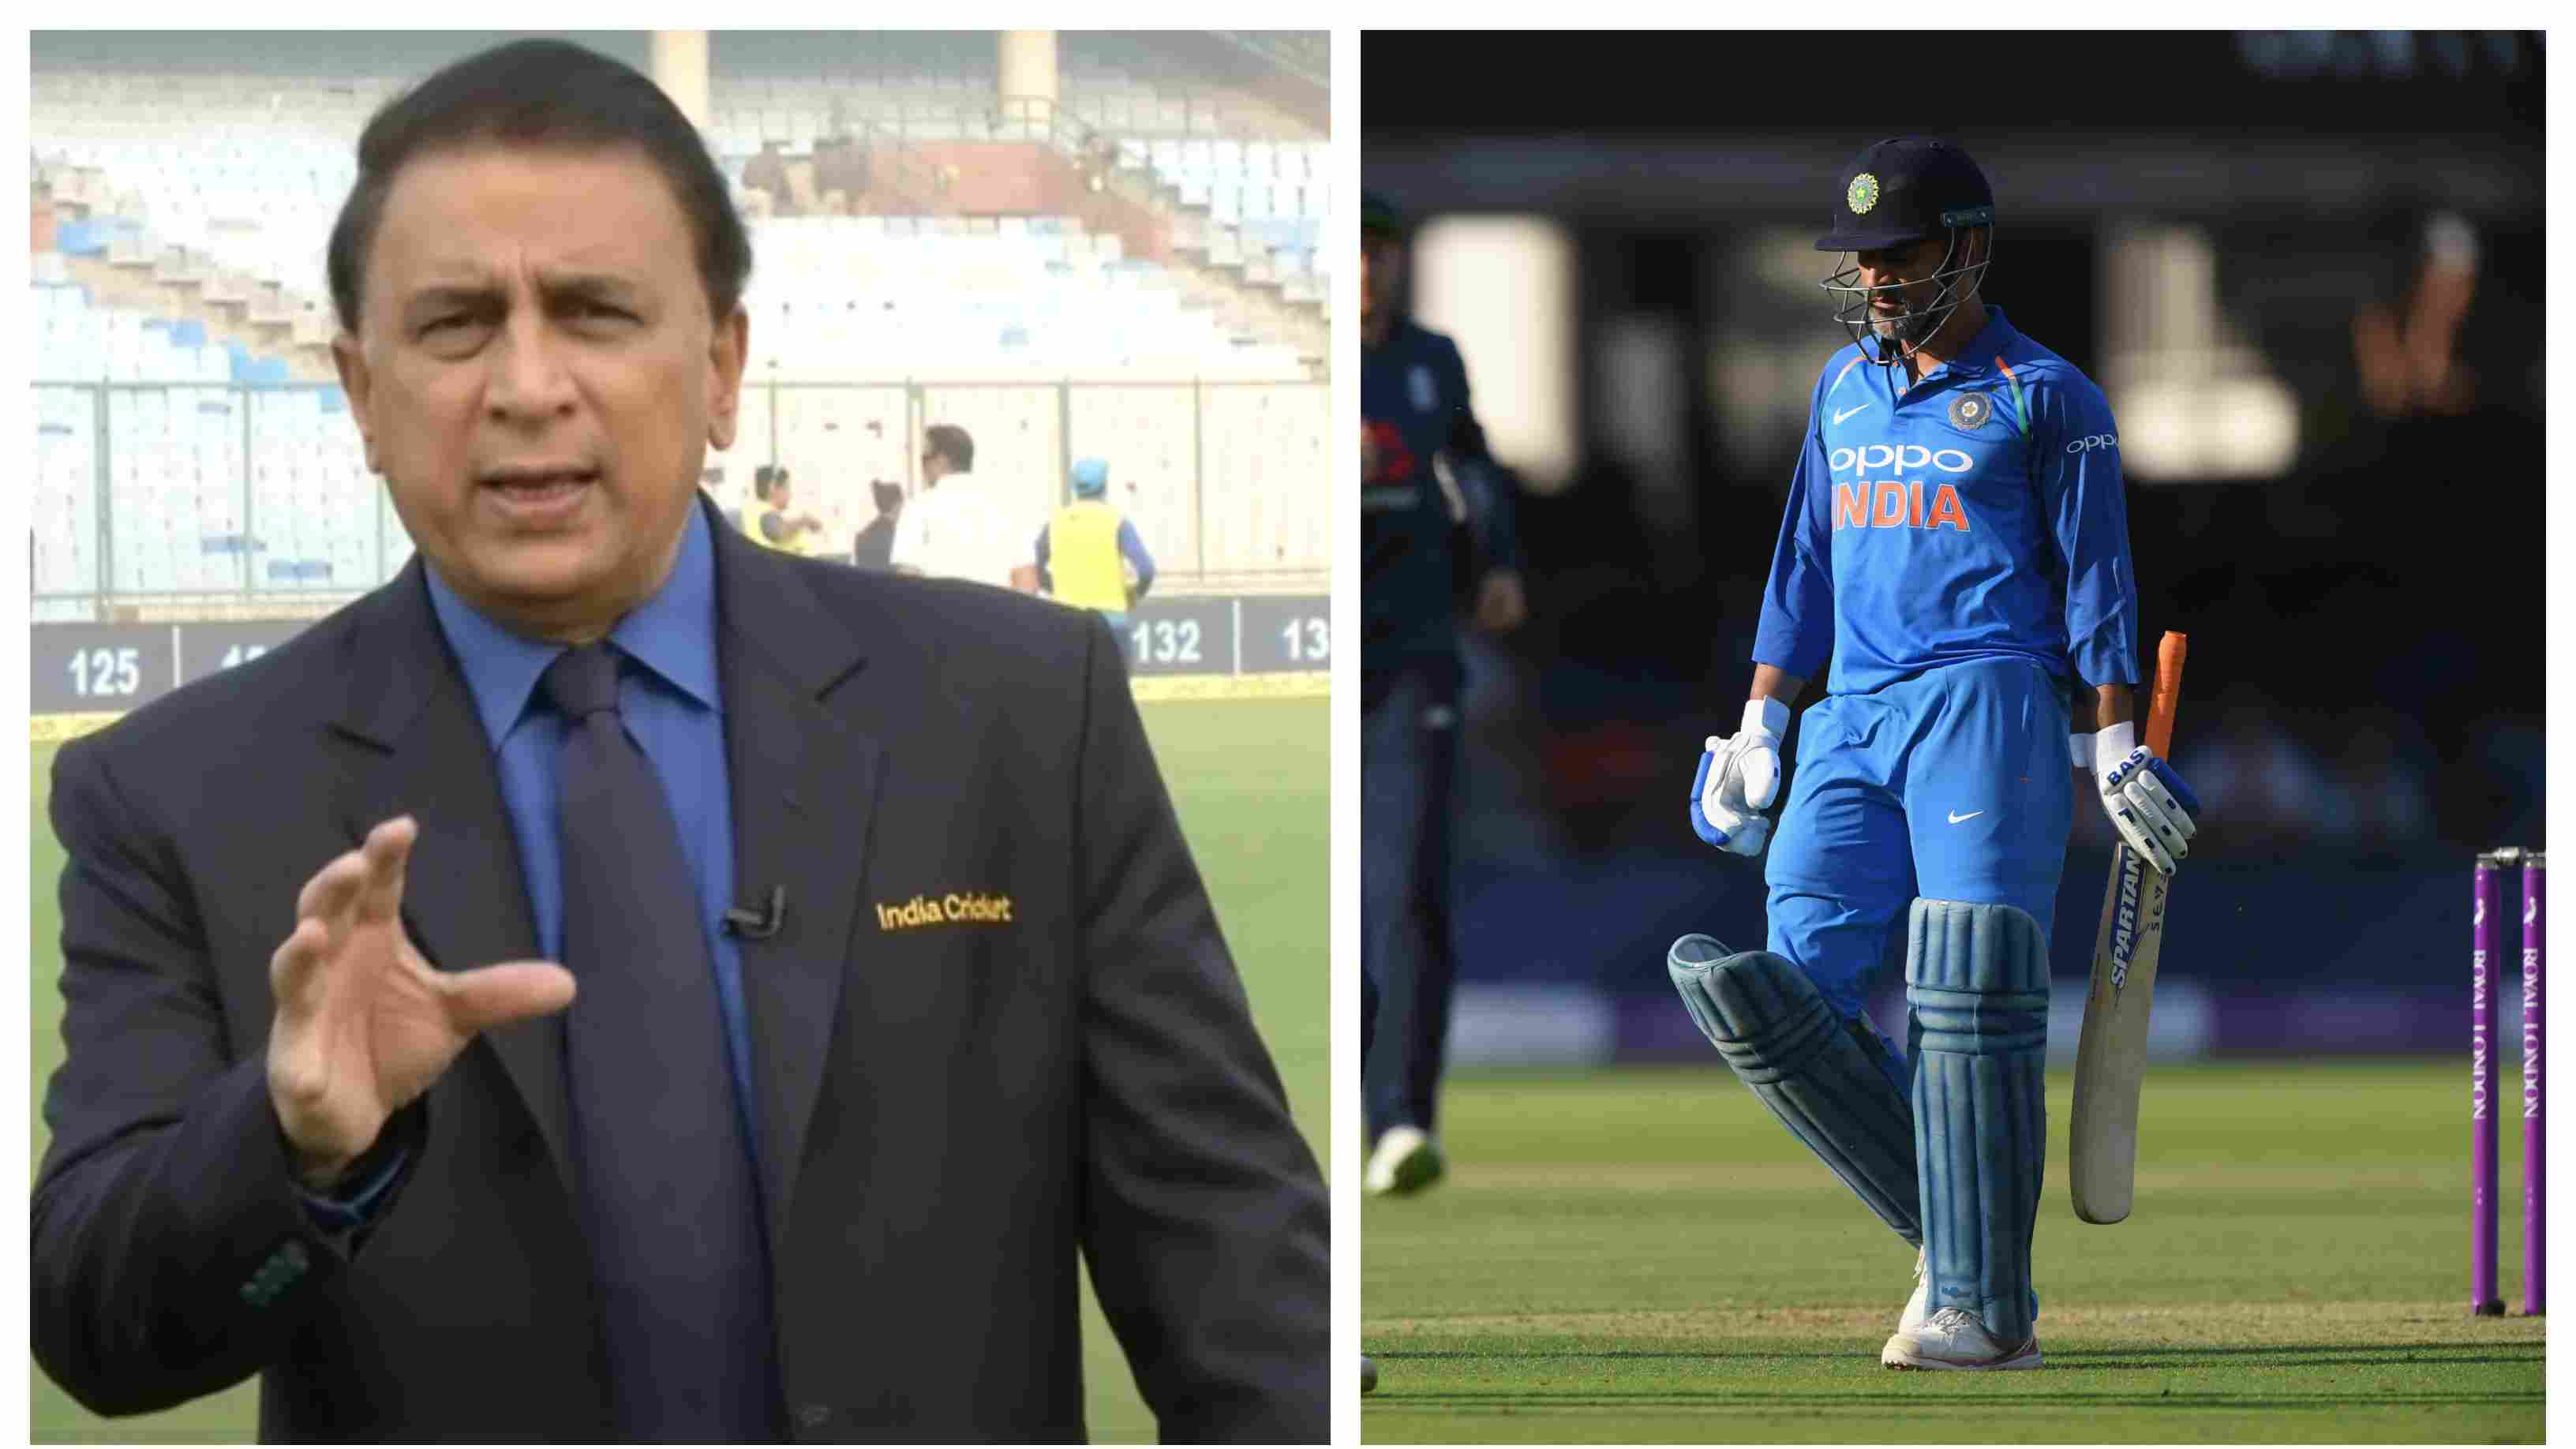 ENG v IND 2018: MS Dhoni's knock at Lord's reminded me of my infamous 36 not out, says Sunil Gavaskar